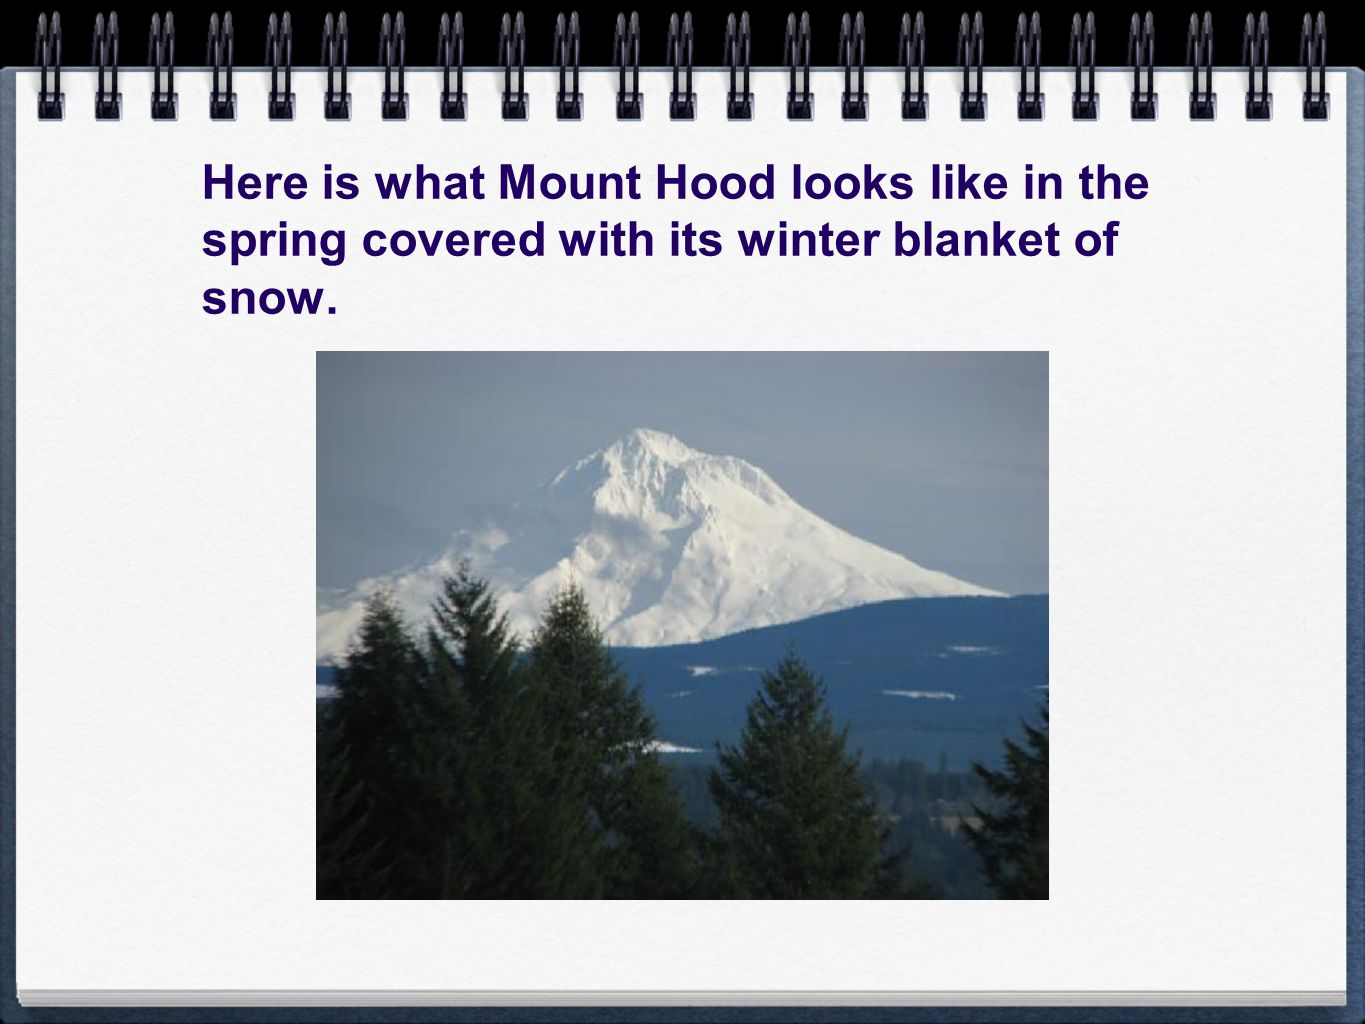 Here is what Mount Hood looks like in the spring covered with its winter blanket of snow.